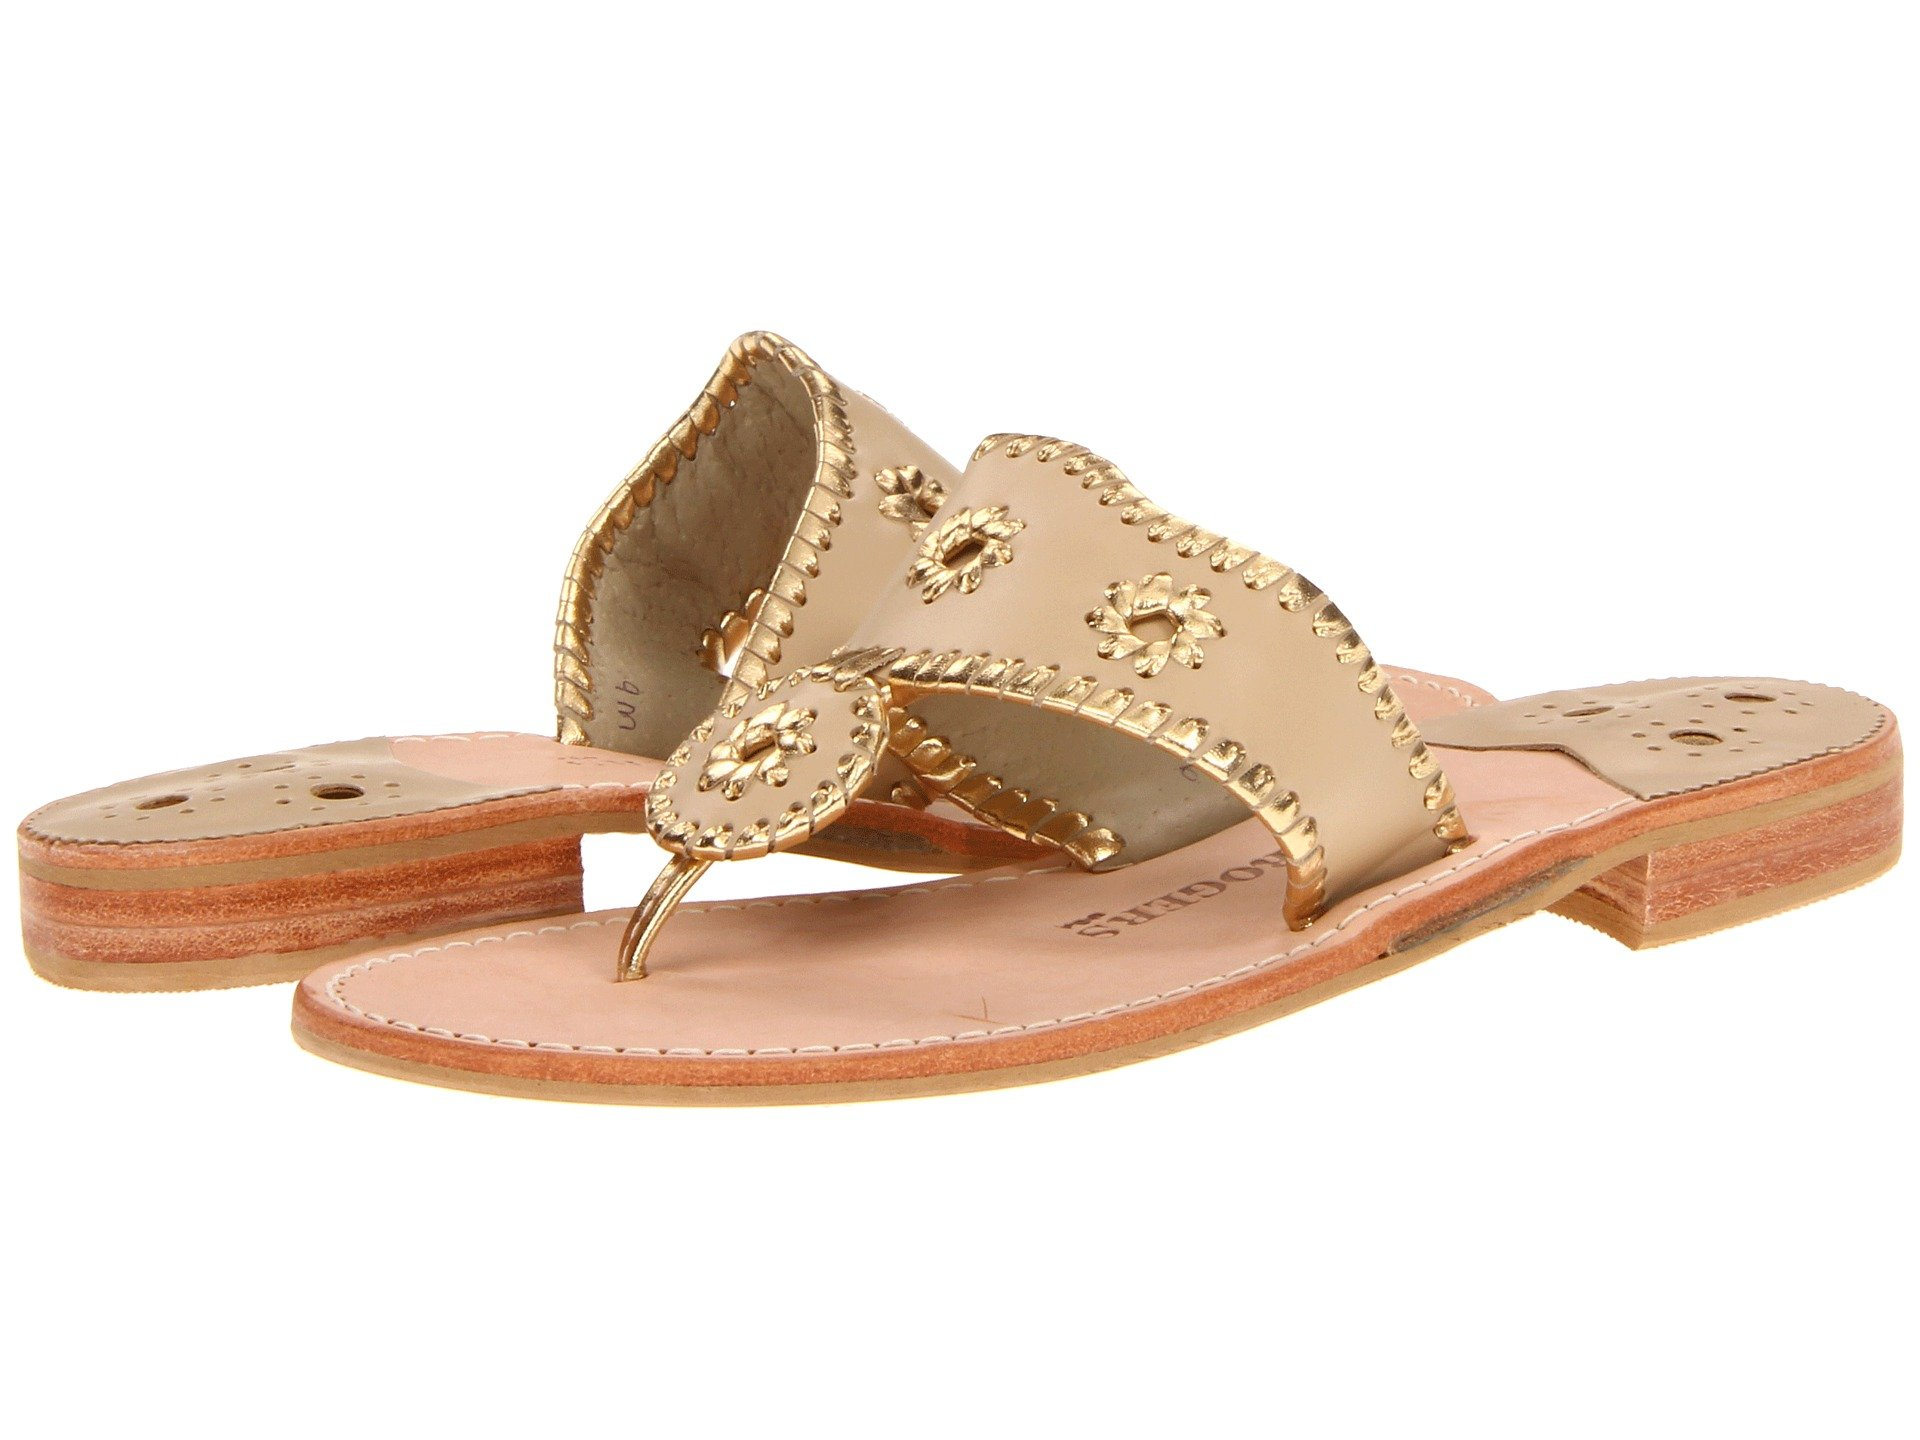 a392f92ca04882 Women s Jack Rogers Sandals + FREE SHIPPING